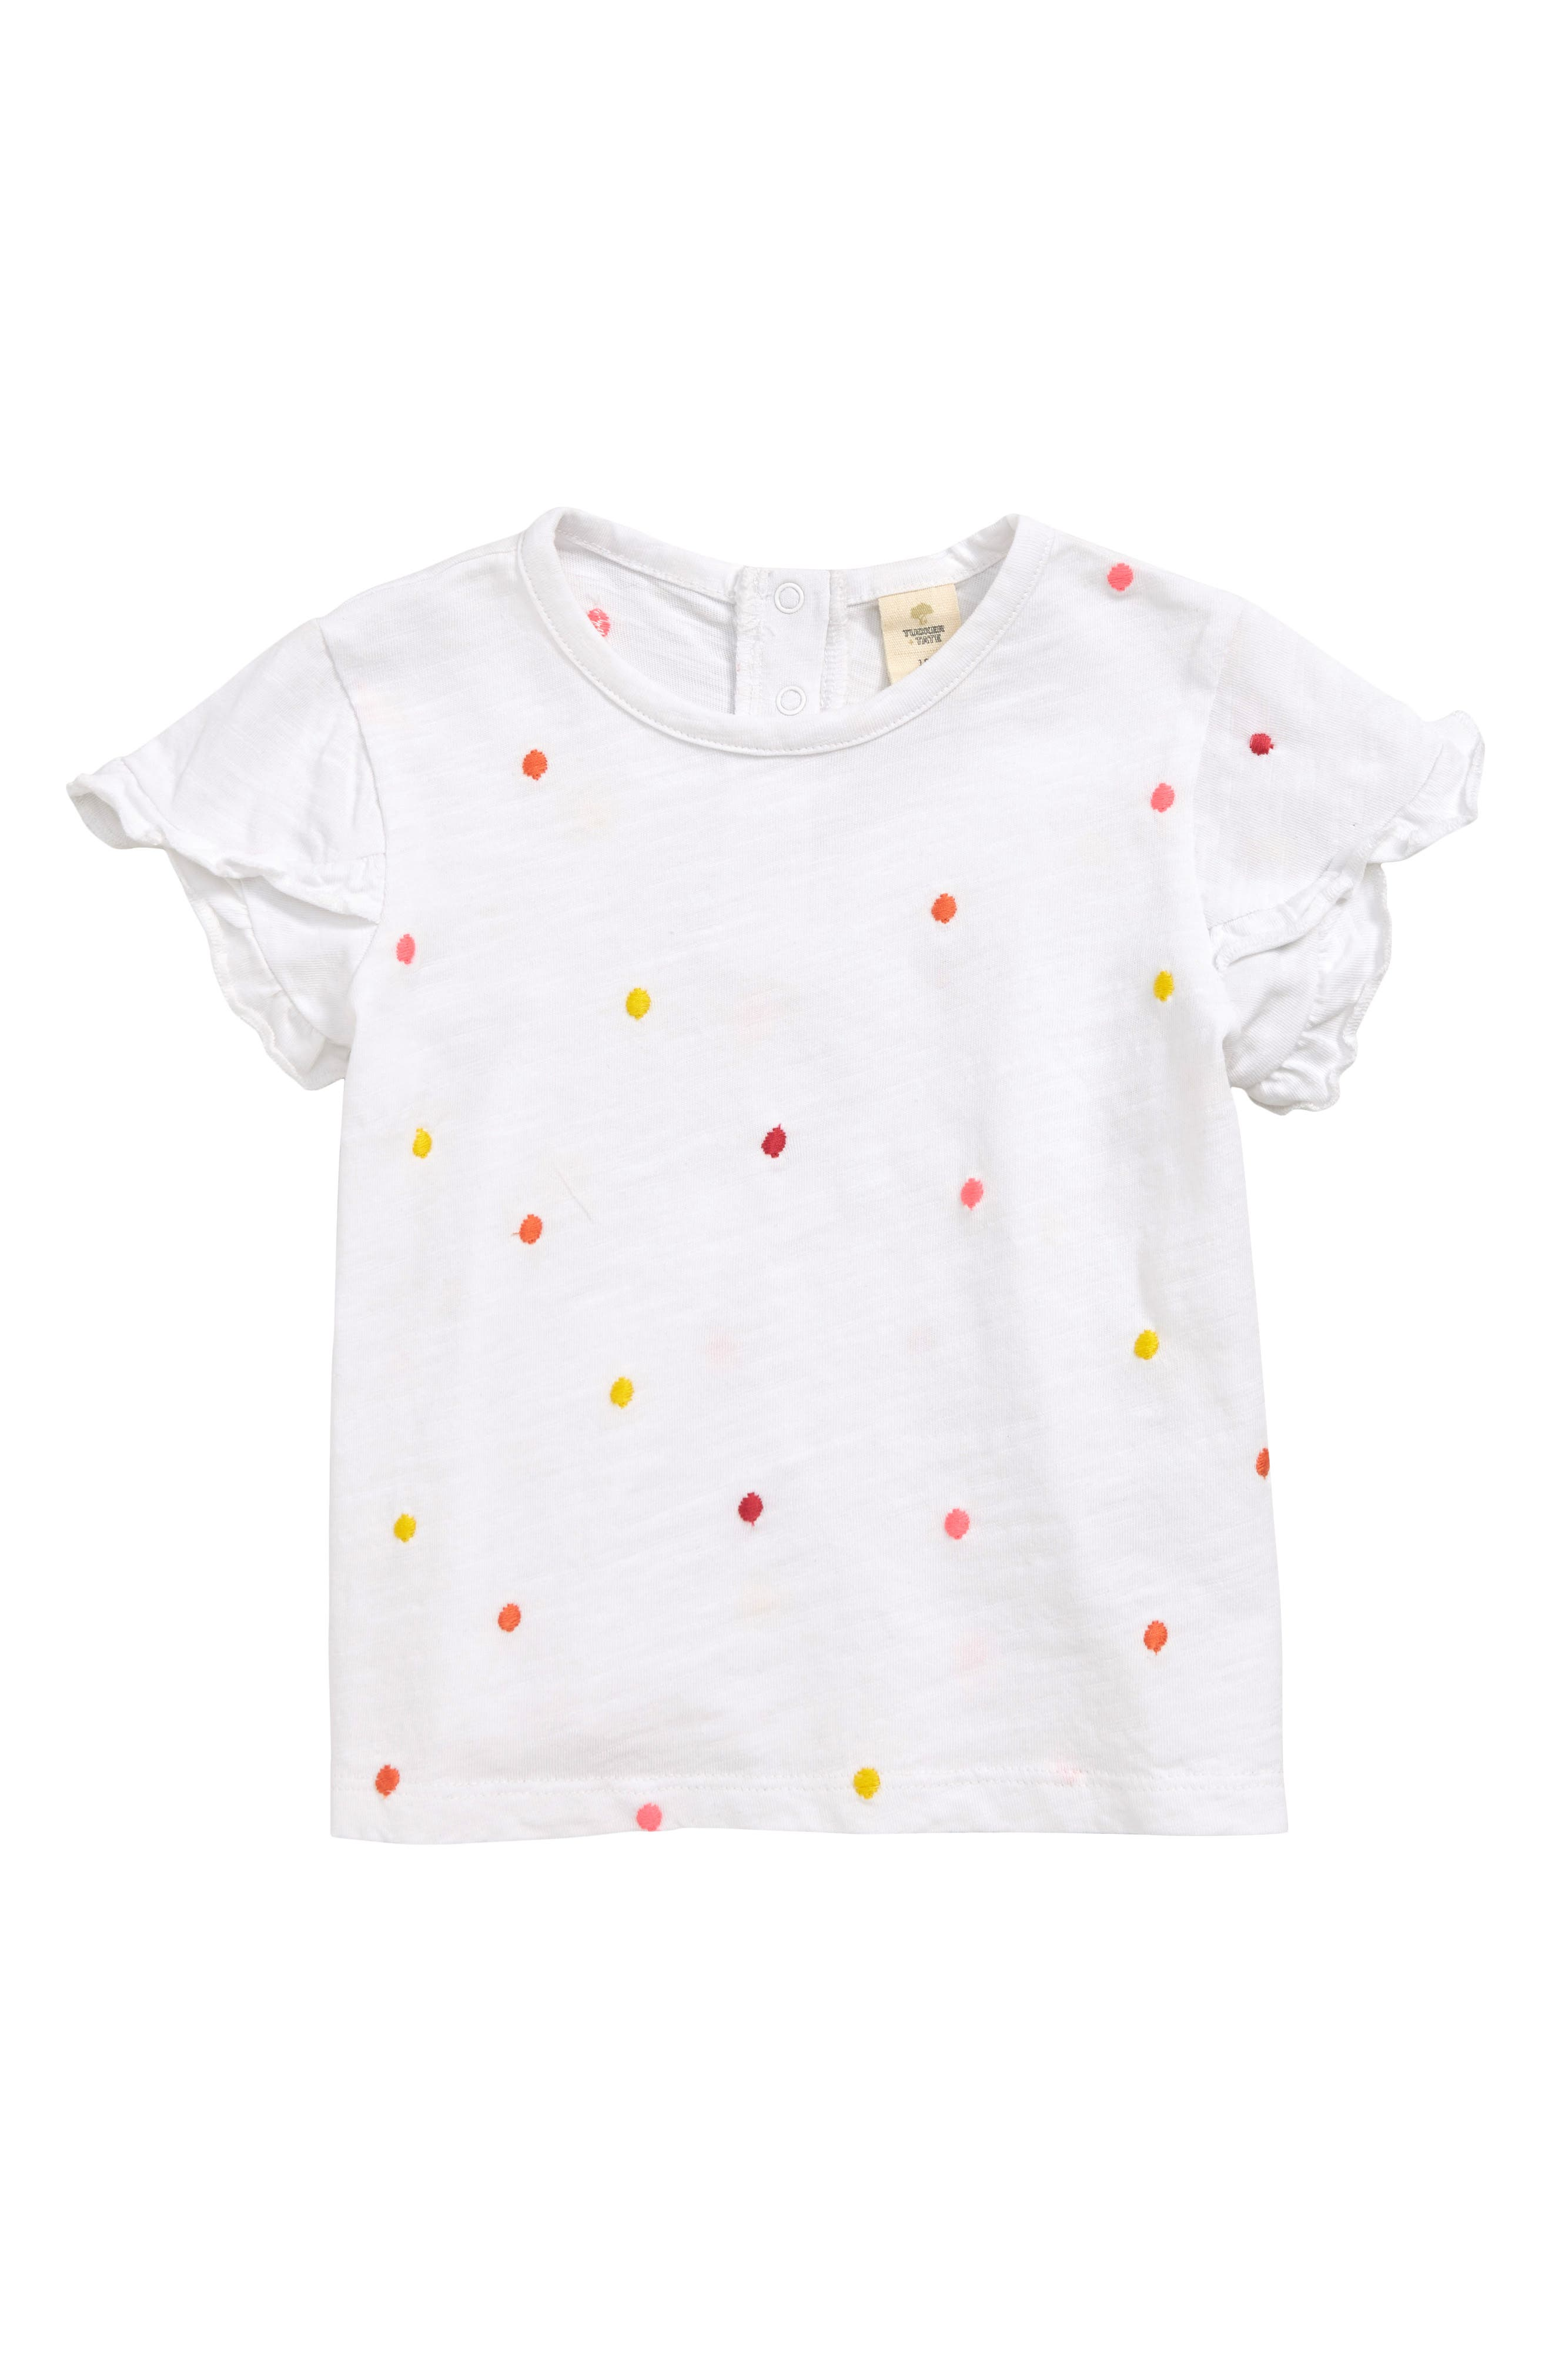 TUCKER + TATE Embroidered Dot T-Shirt, Main, color, WHITE